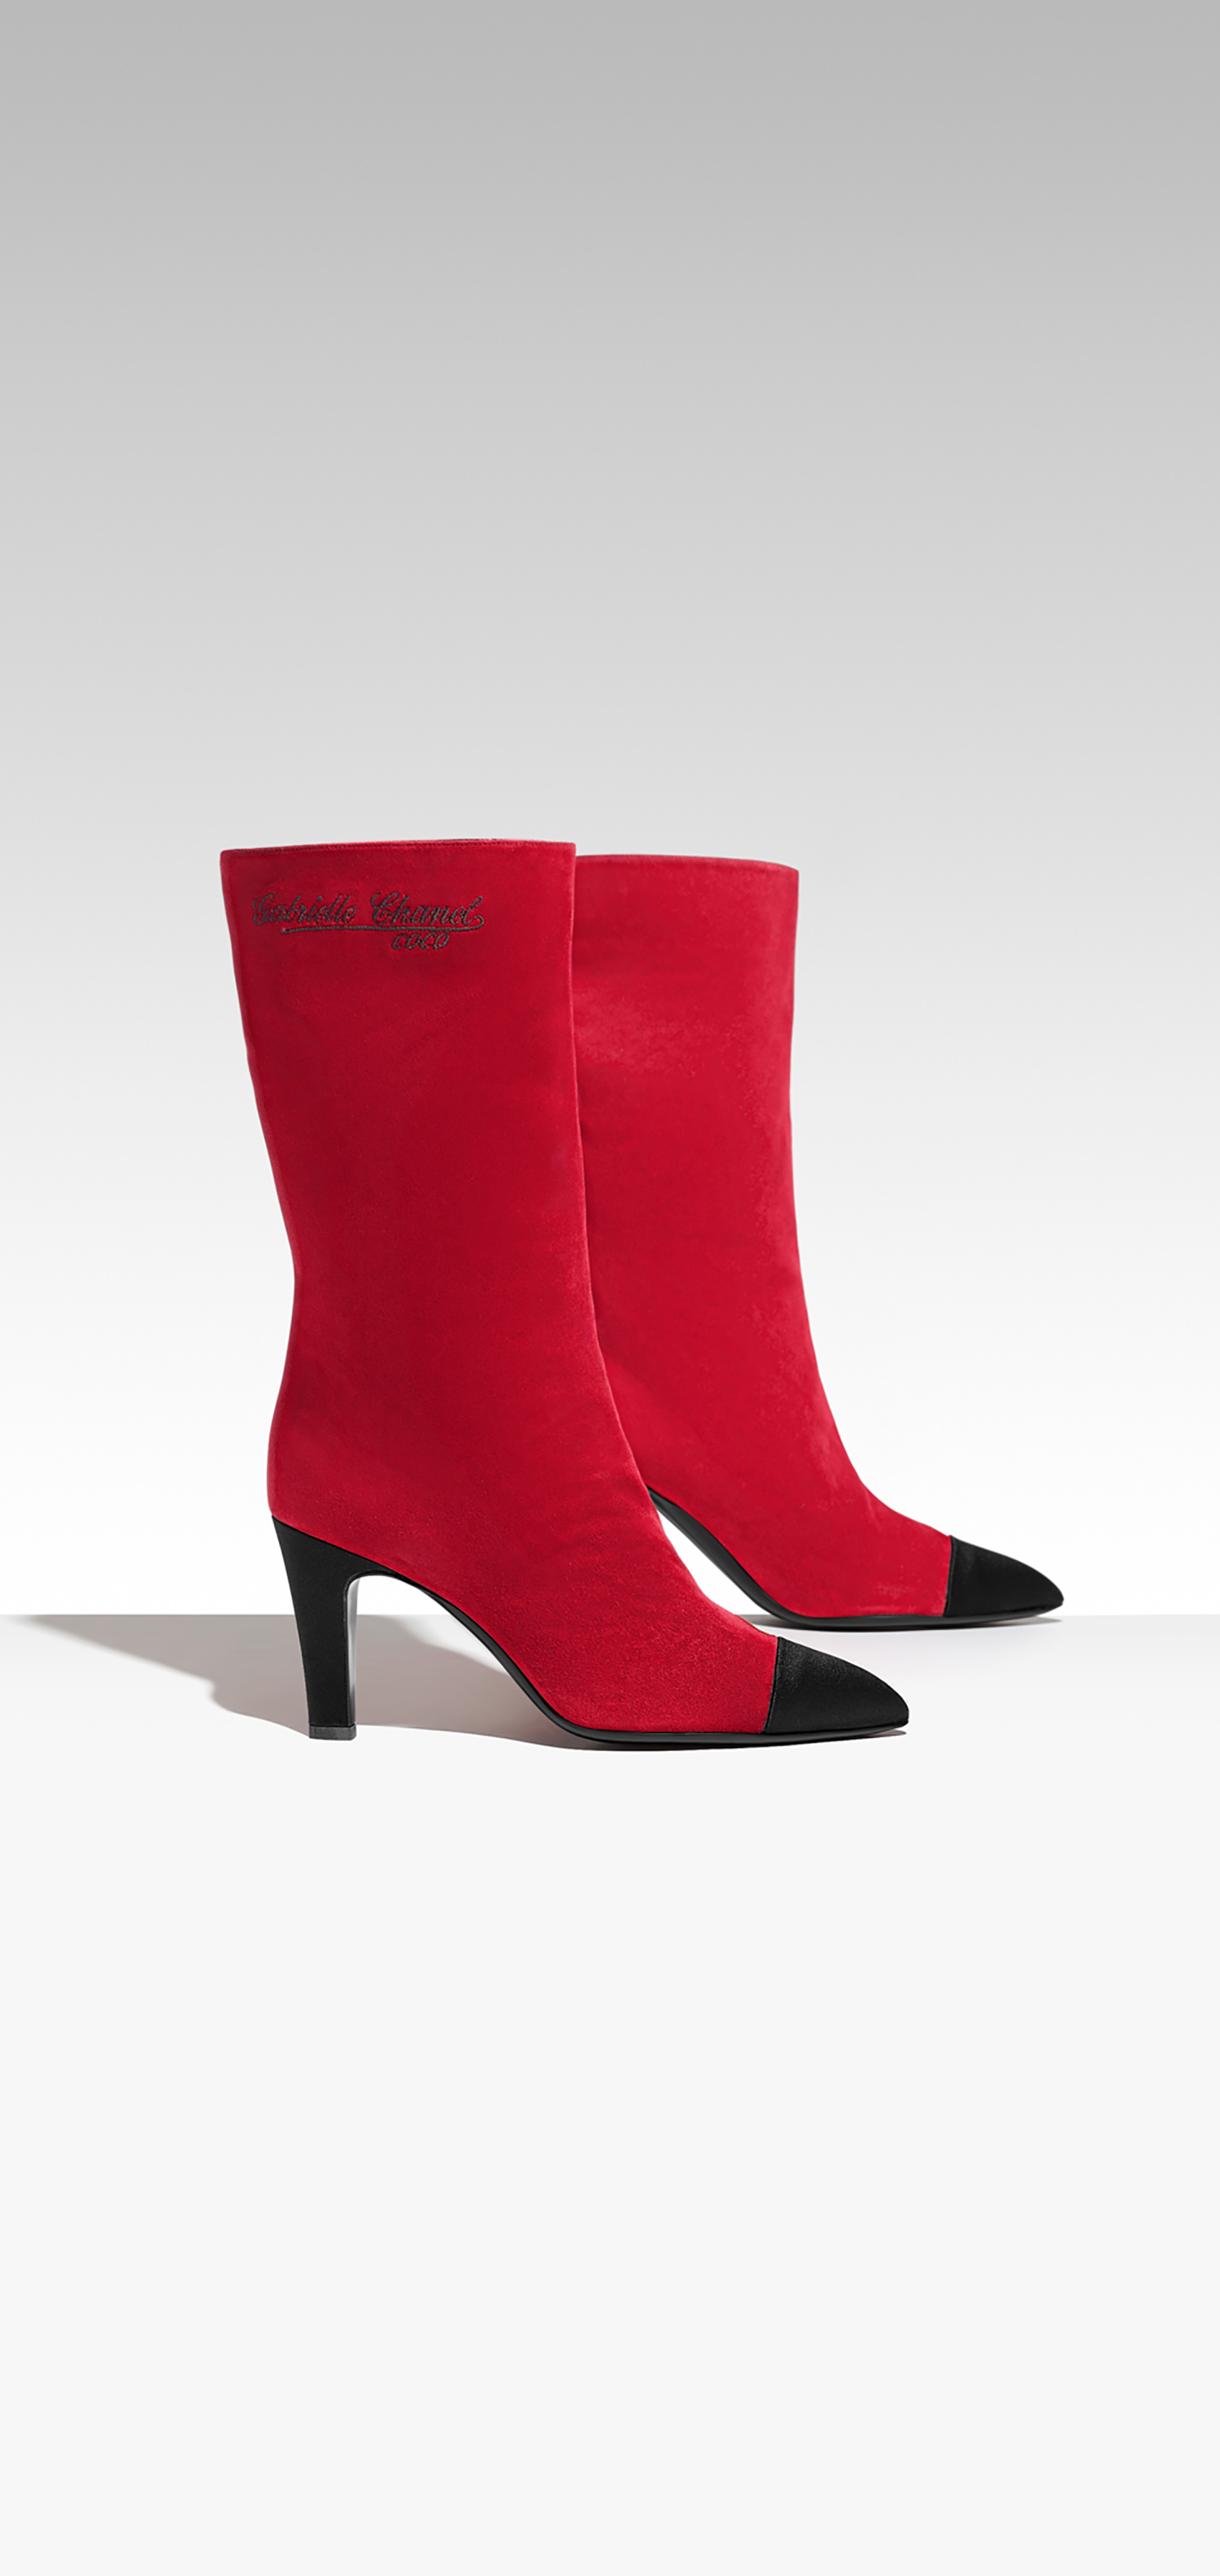 6---G33119-Y51214-C0924--Boots-in-red-suede-and-black-satin_LD